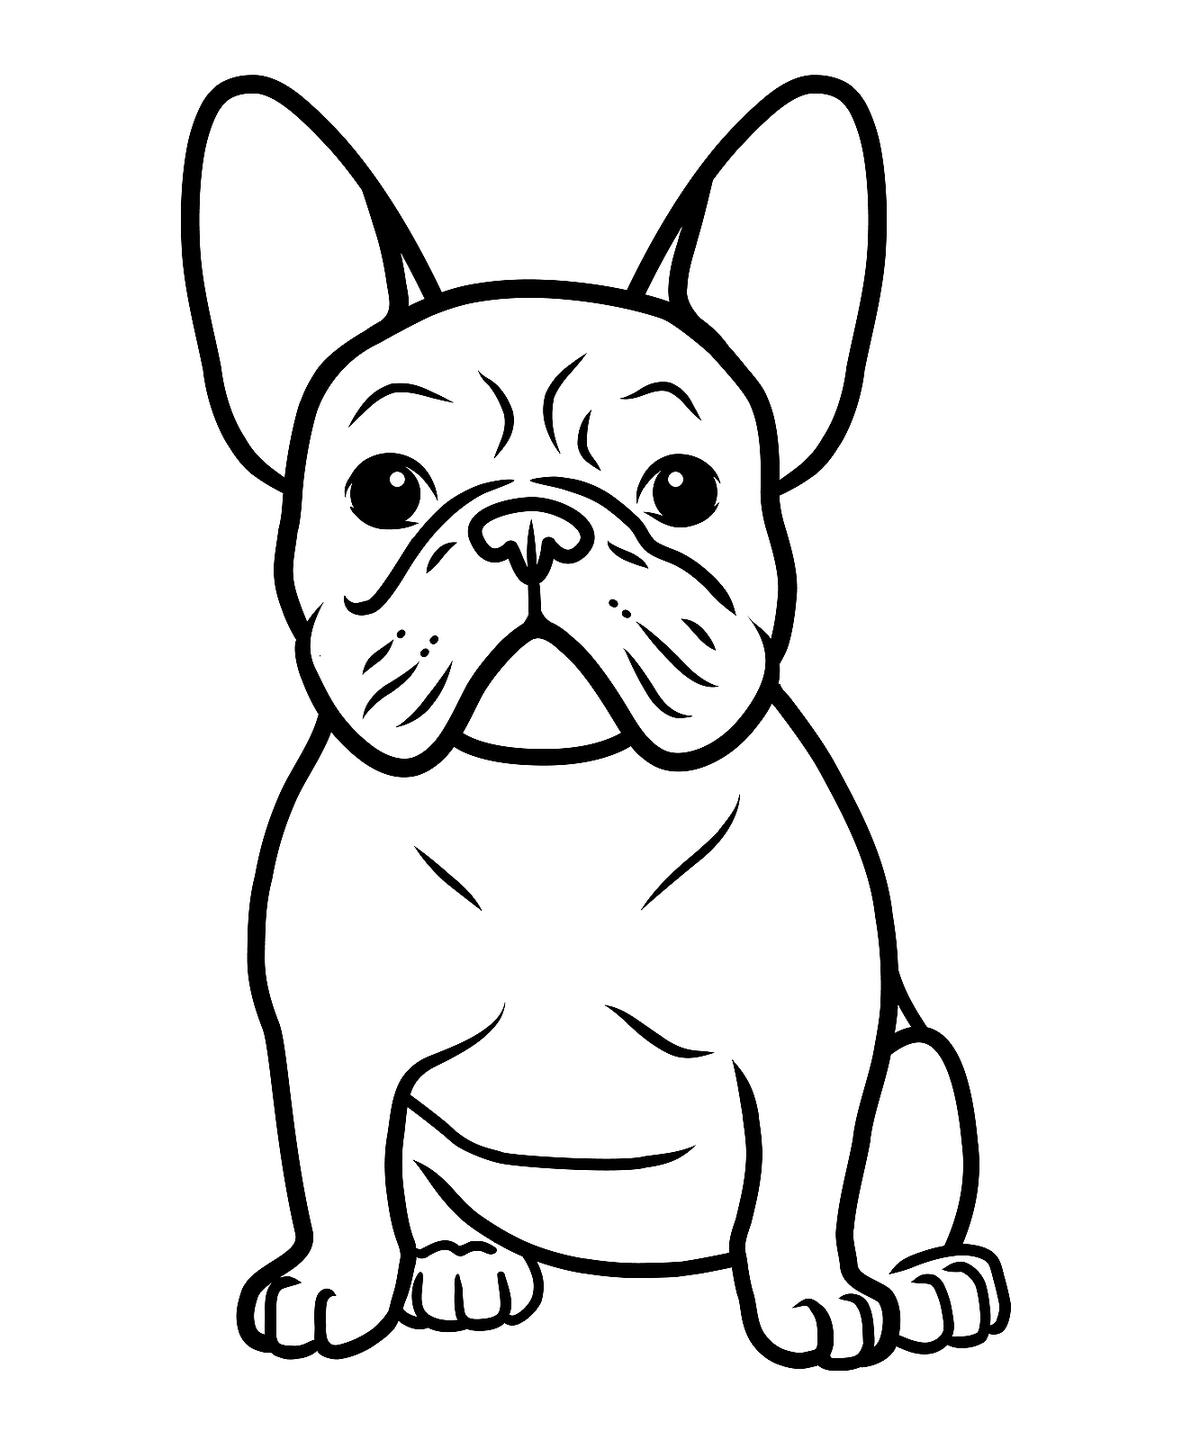 dogs to colour in and print dog dogs adult coloring pages print in and dogs colour to